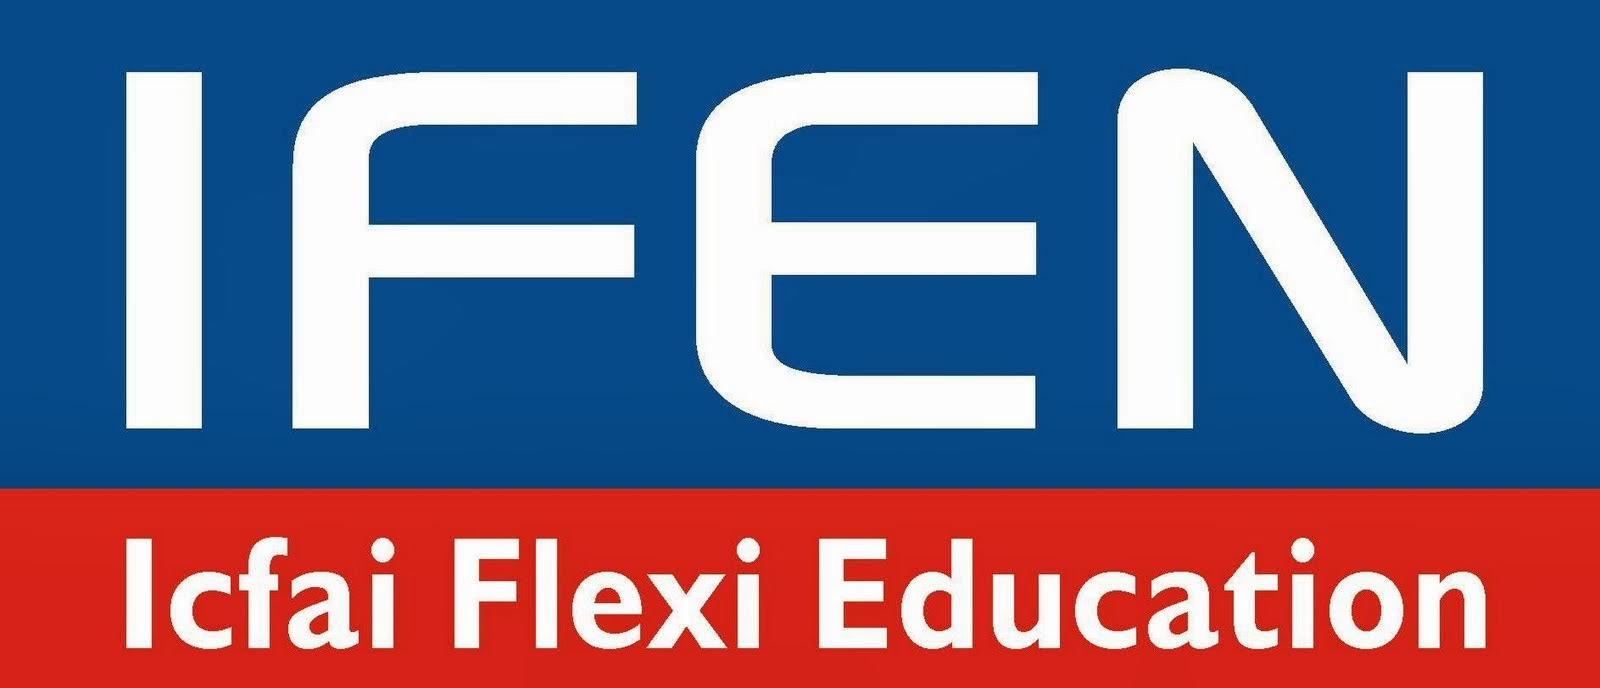 ICFAI Question Papers By Minesh Parikh